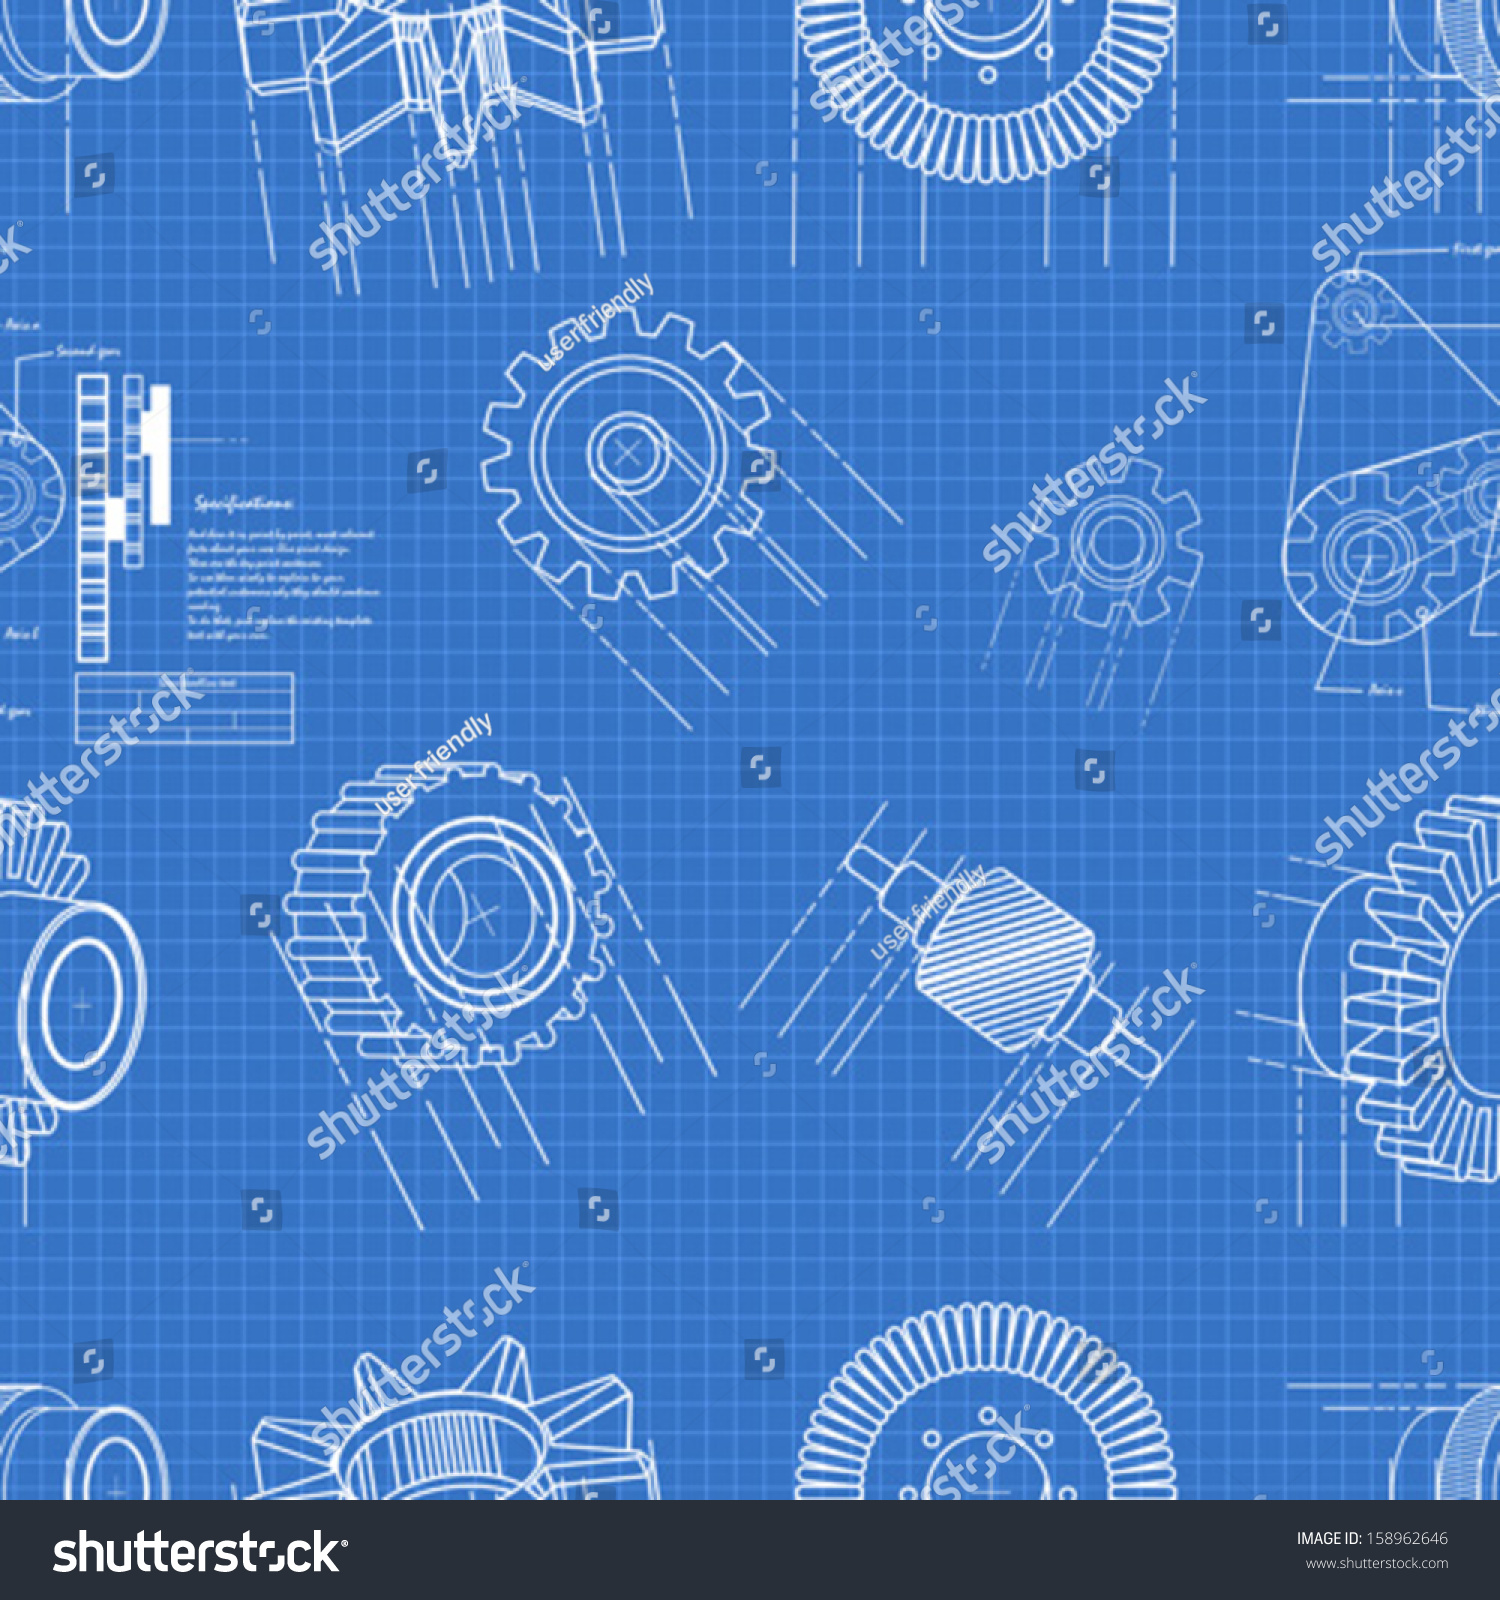 Blueprint gears seamless pattern stock vector 158962646 shutterstock blueprint gears seamless pattern malvernweather Images